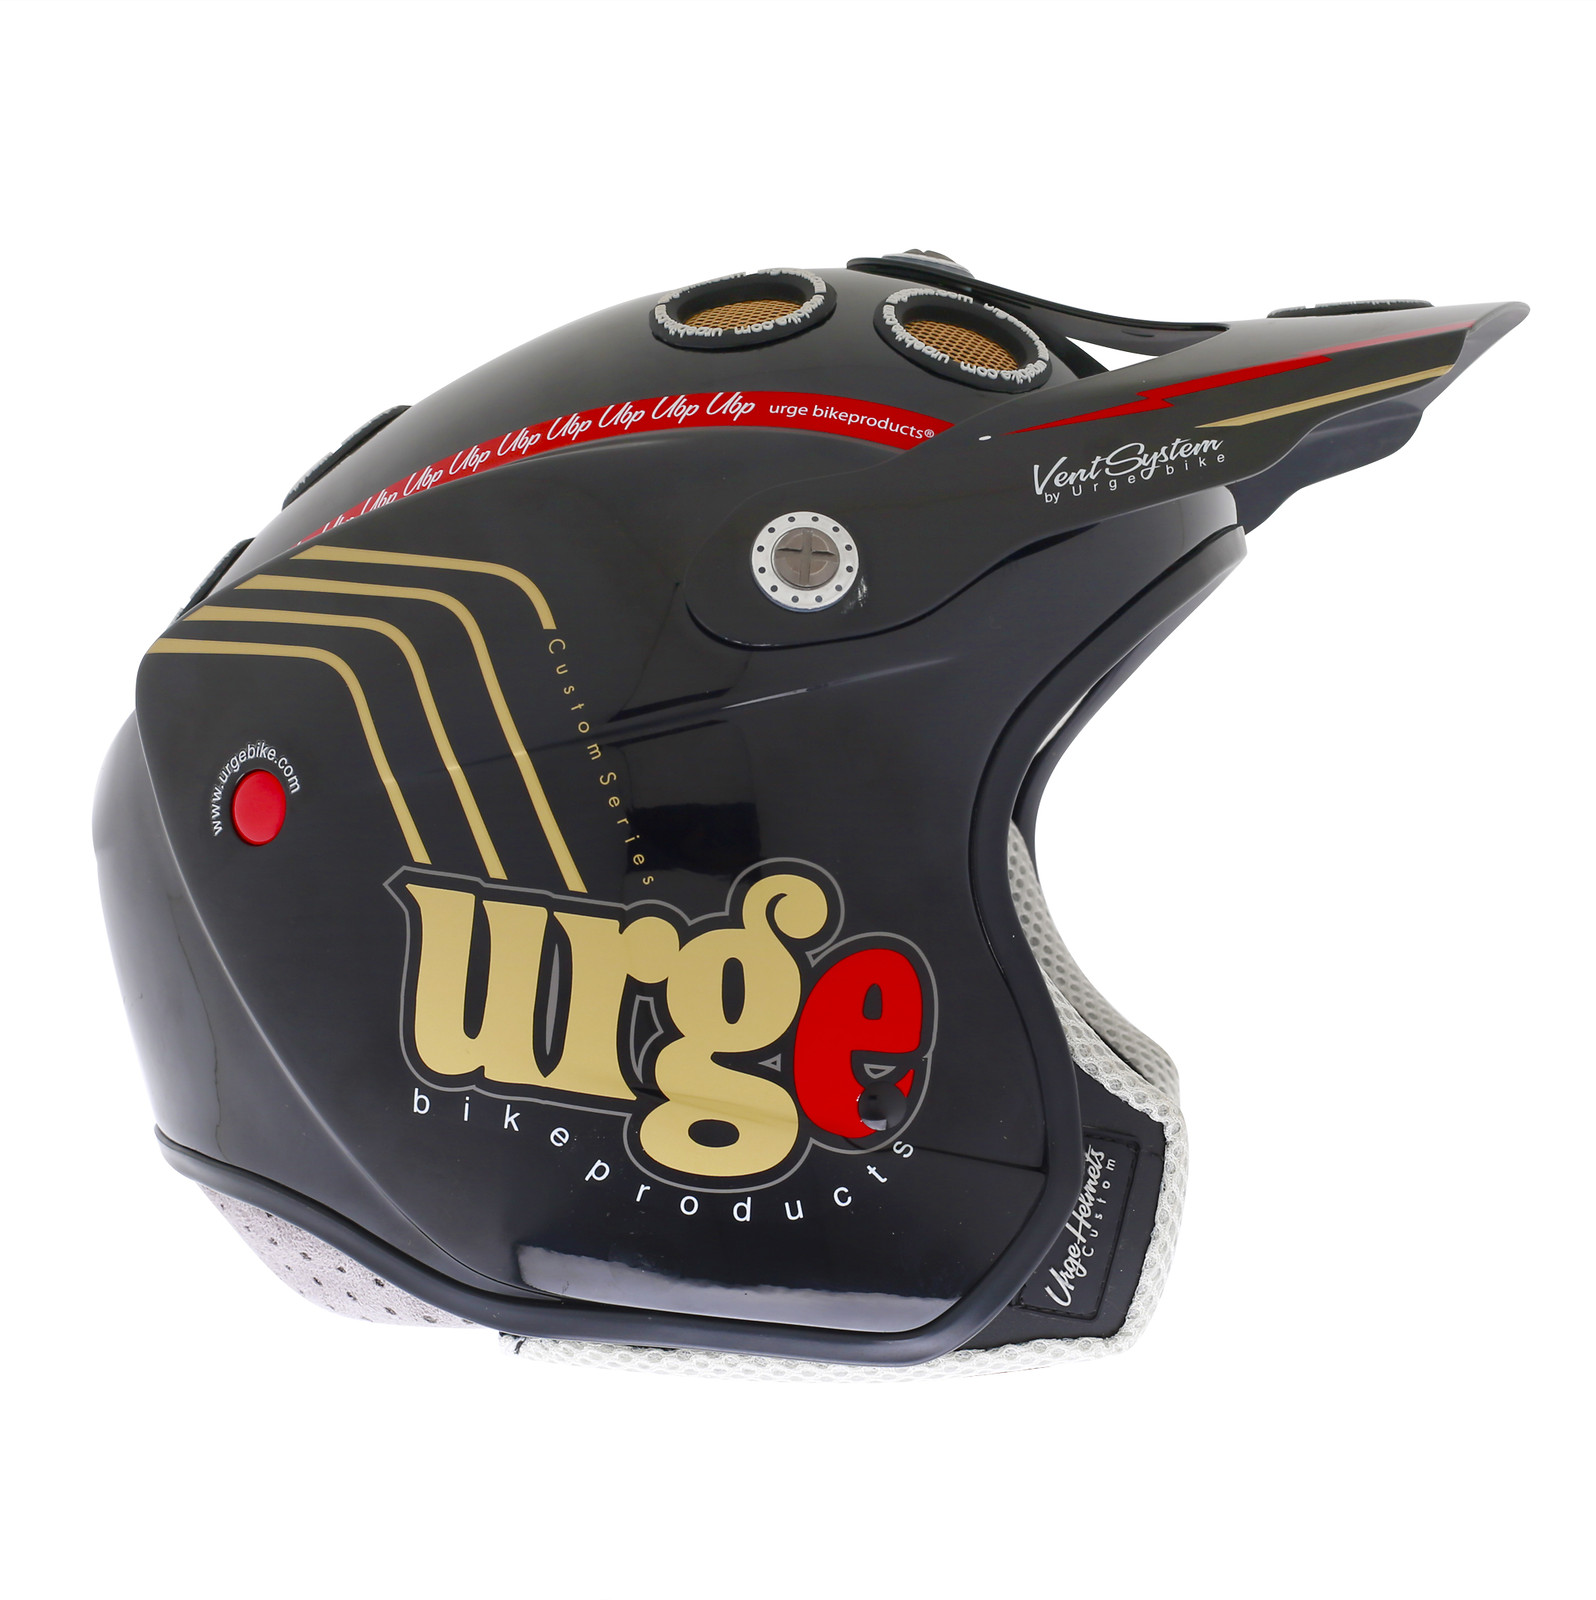 Urge 2013 Real Jet Open Face Helmet Reviews Comparisons